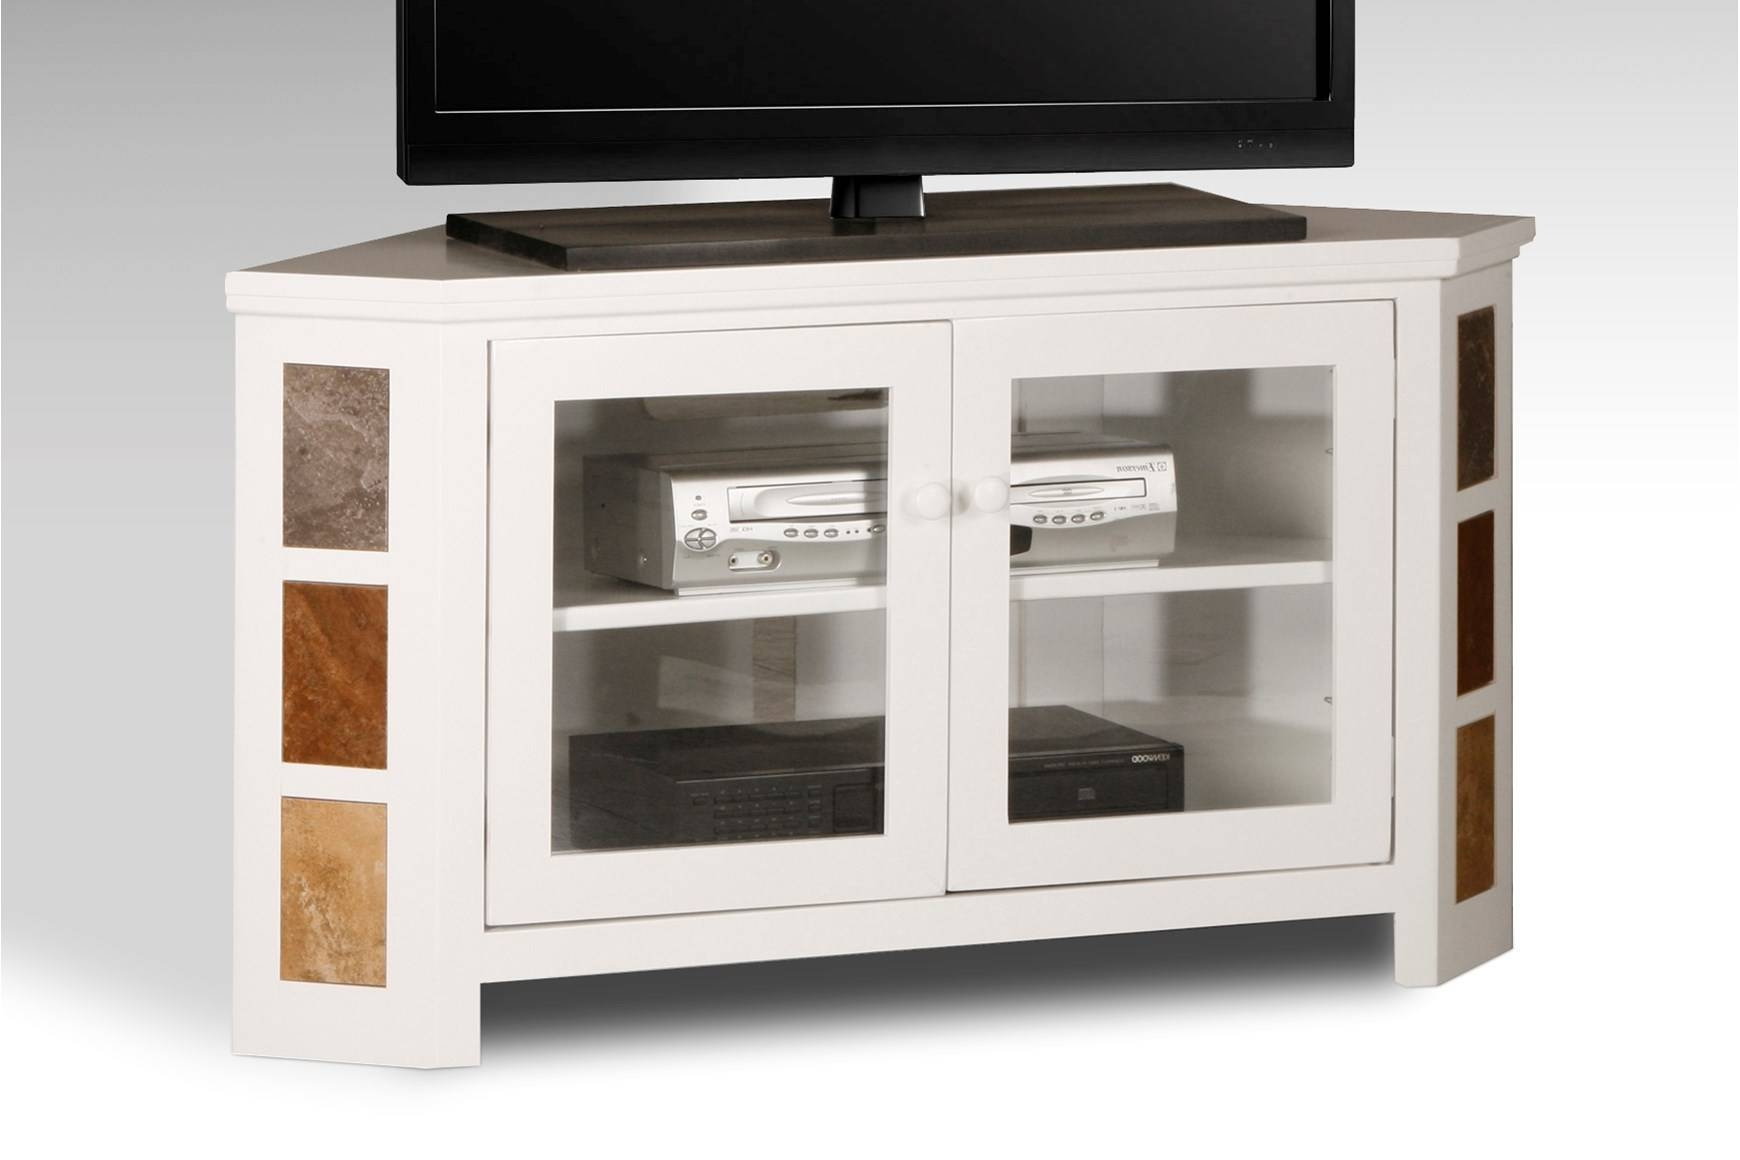 Wooden Tv Stands With Doors On Bottom